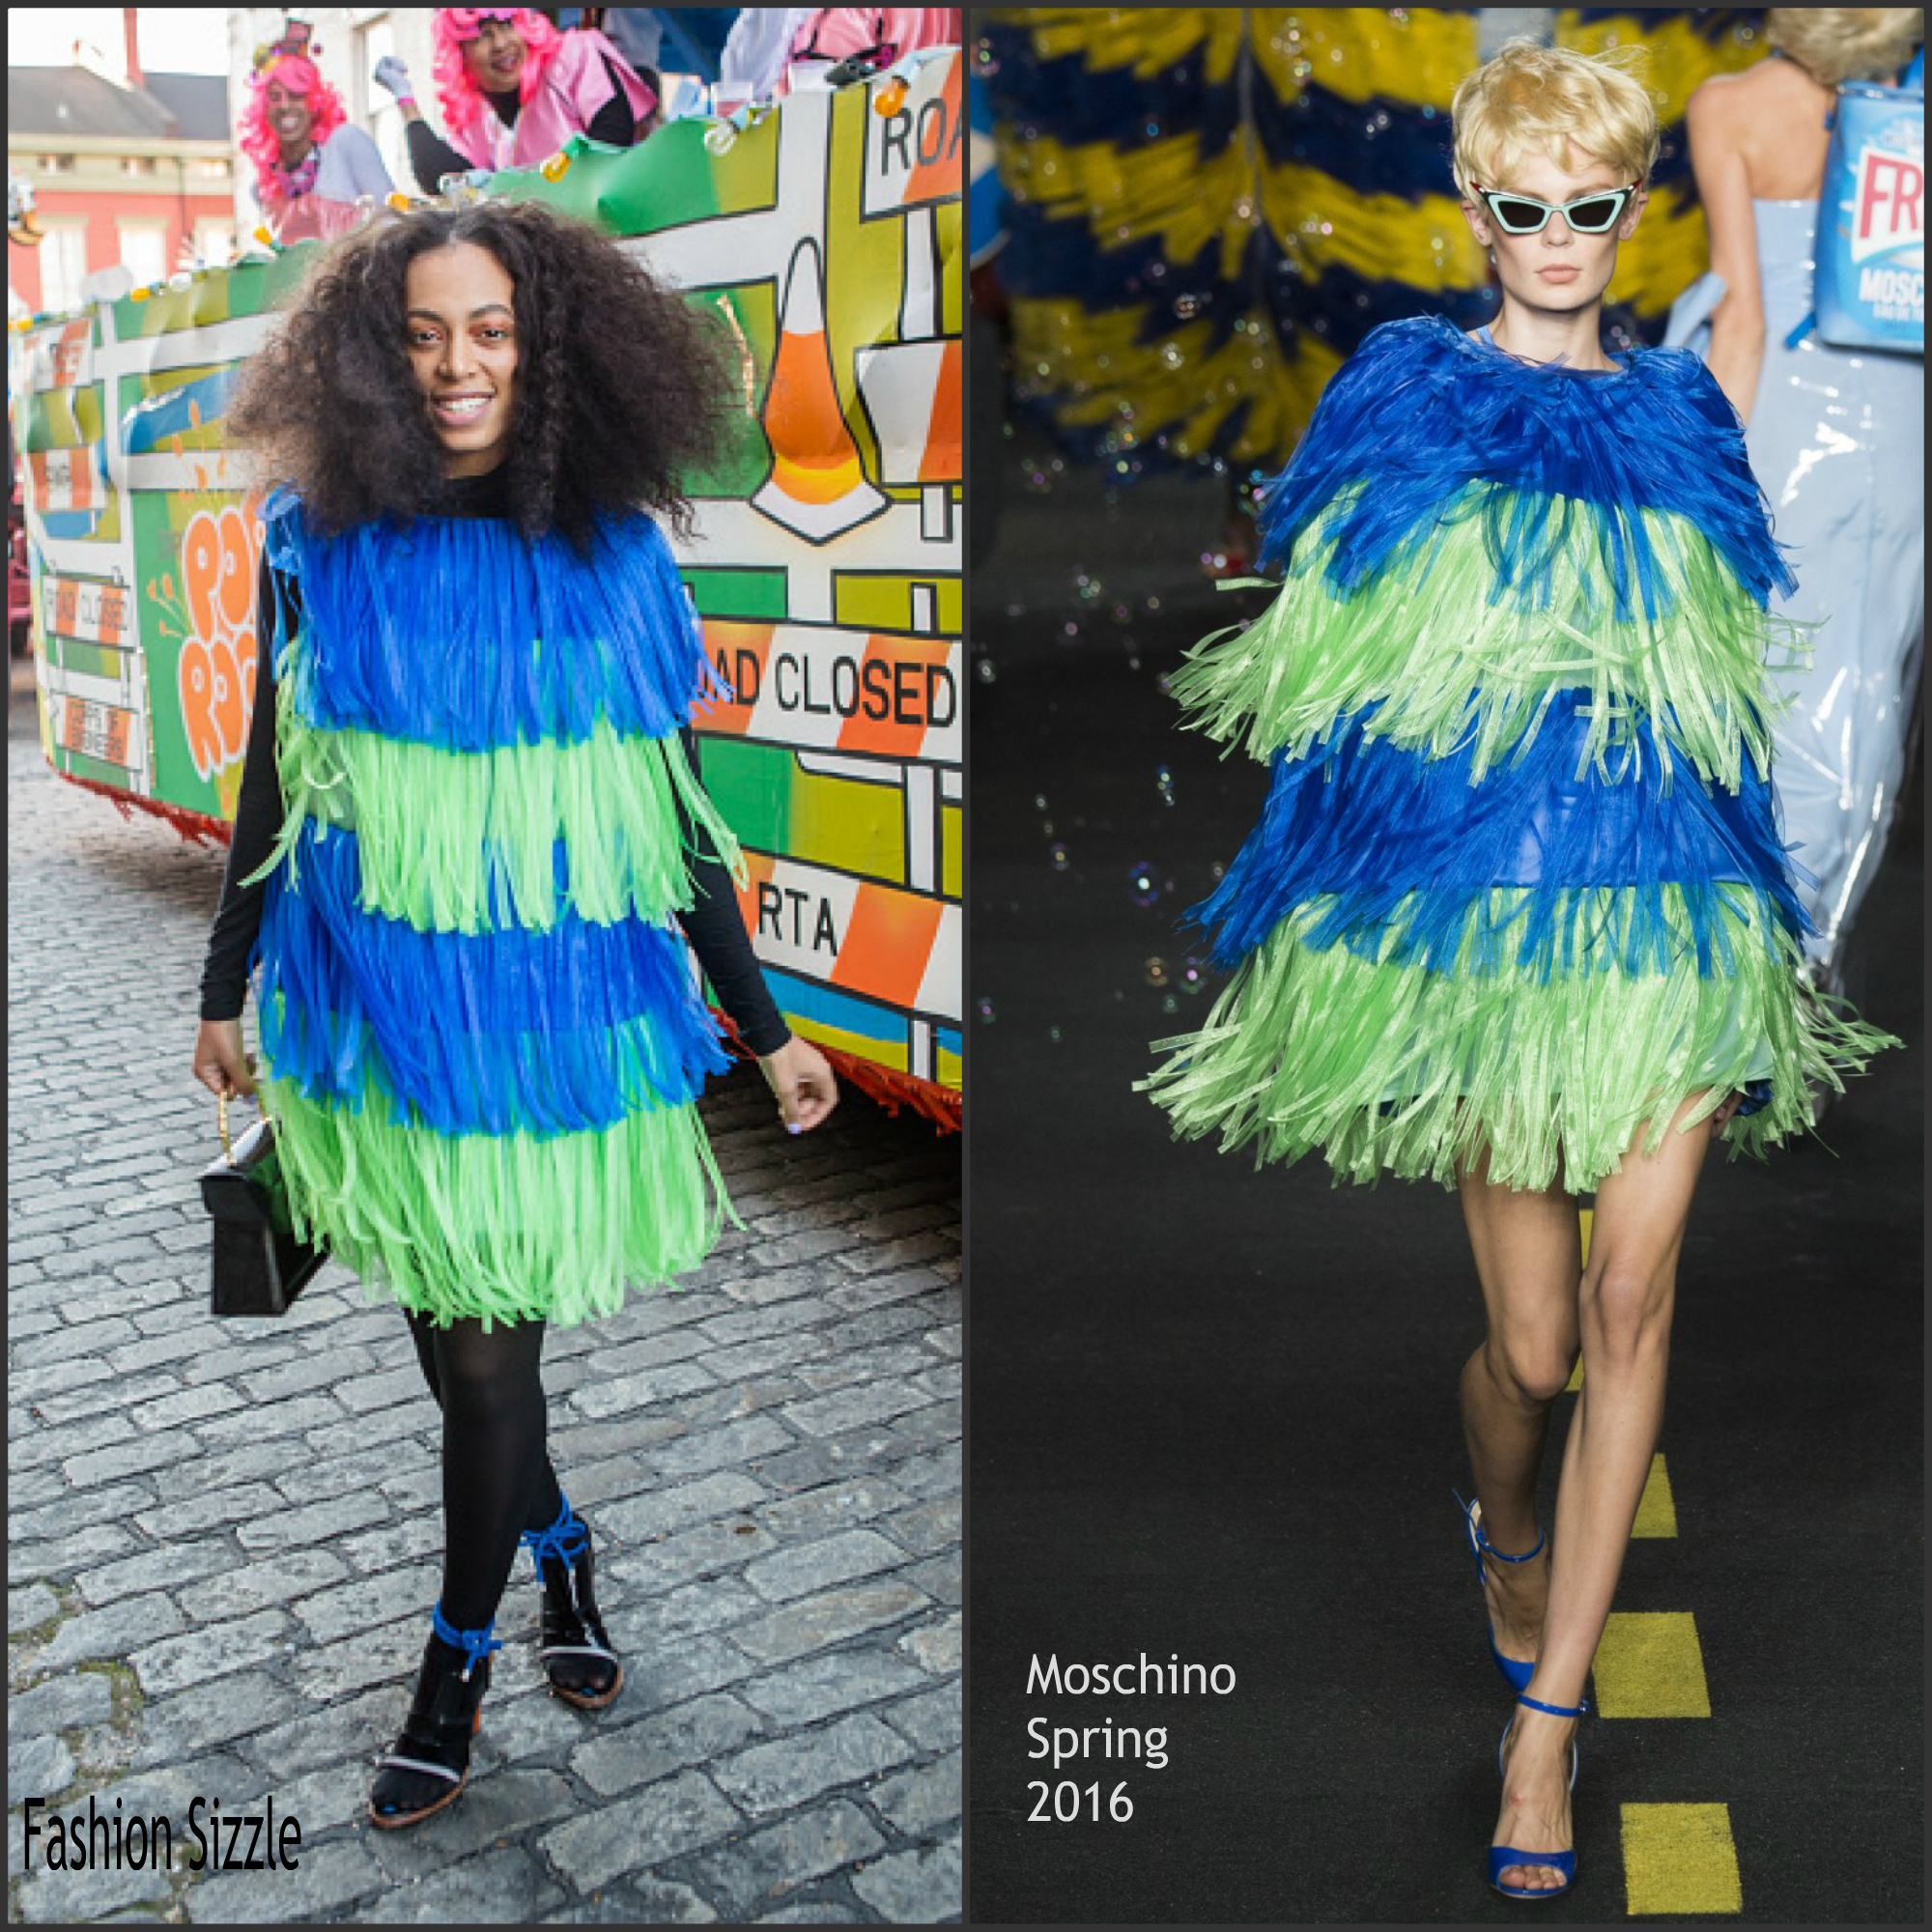 solange-knowles-in-moschino-mardi-gras-2016 (1)